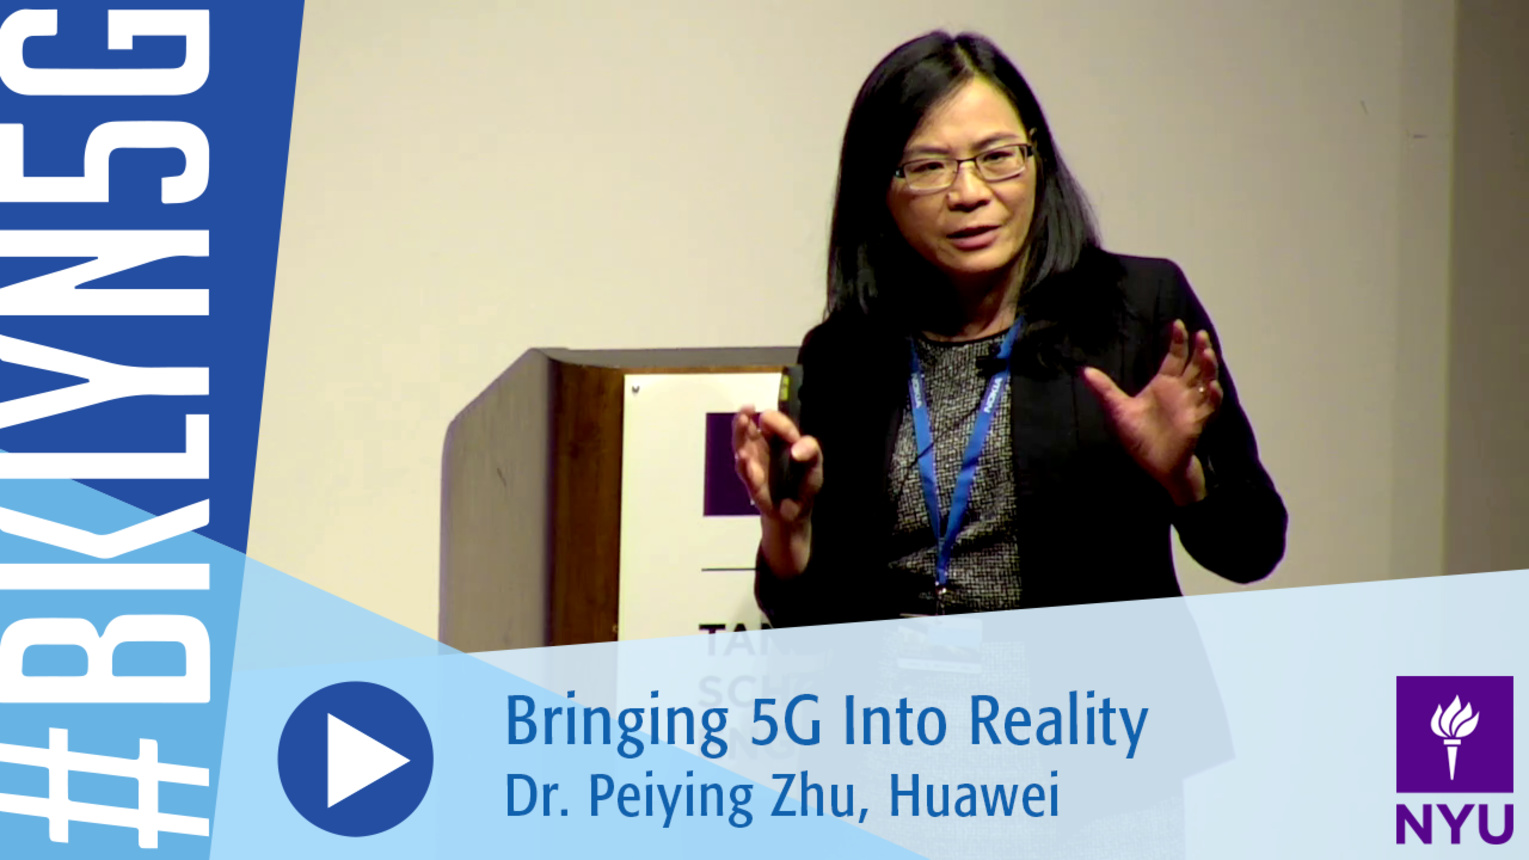 Brooklyn 5G 2016: Dr. Peiying Zhu on Bringing 5G Into Reality